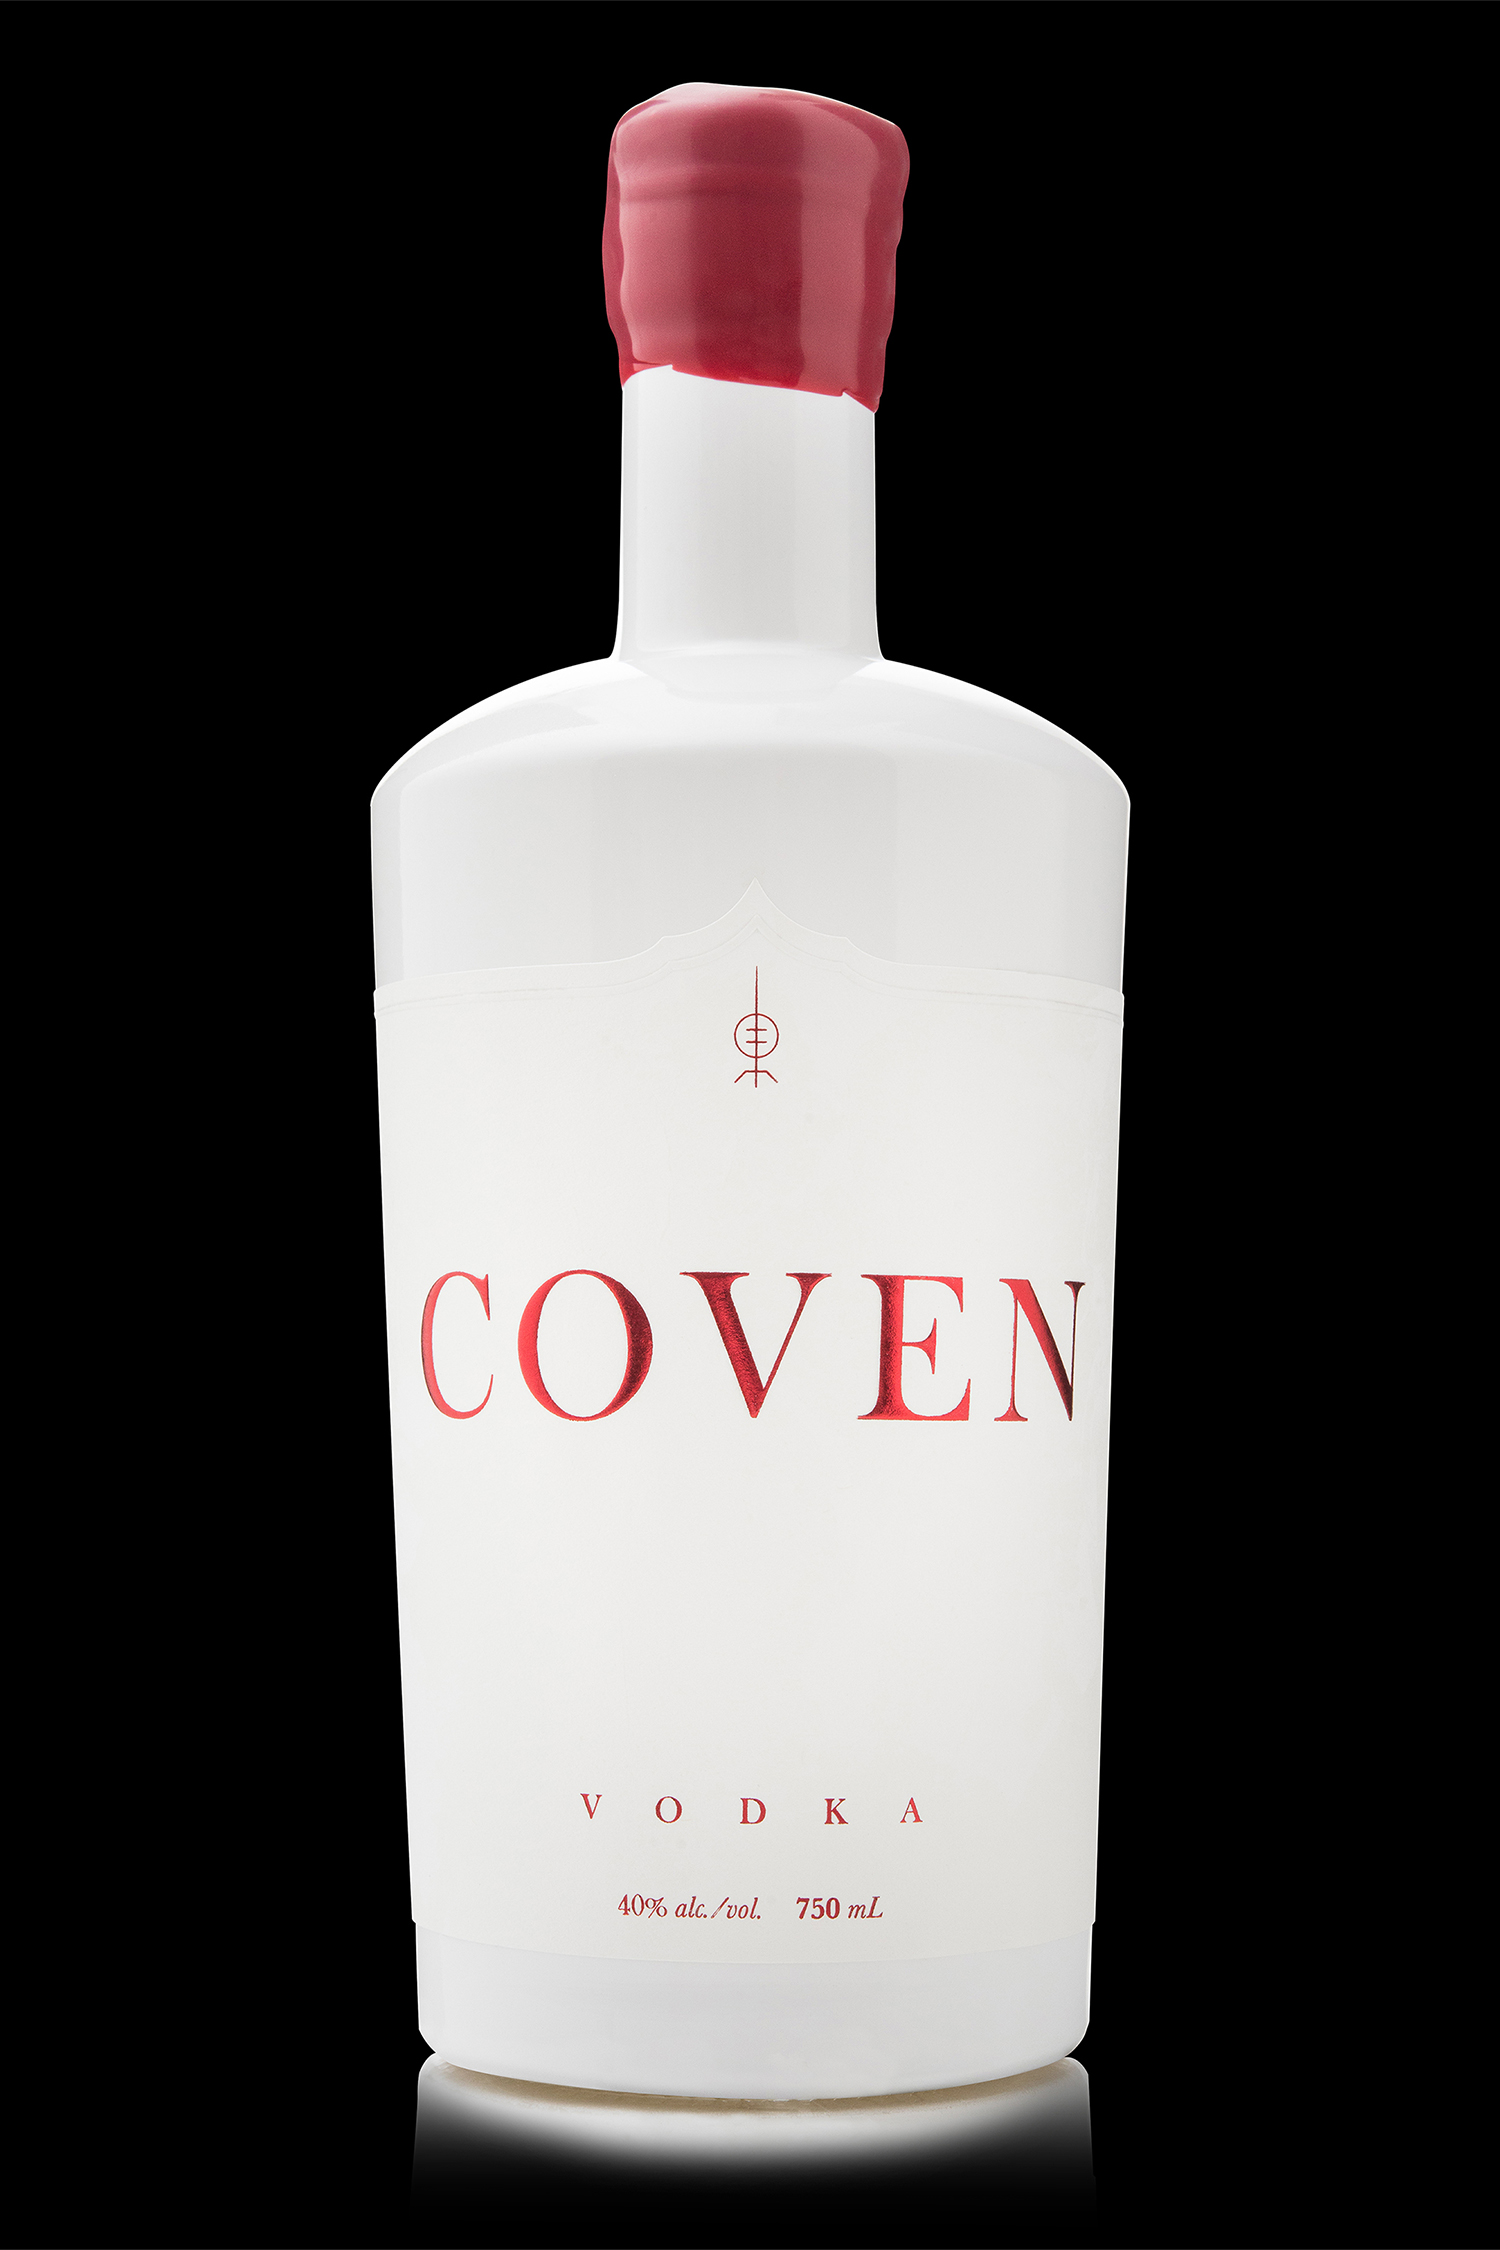 Packaging Design for Arbutus Distillery's Coven Vodka